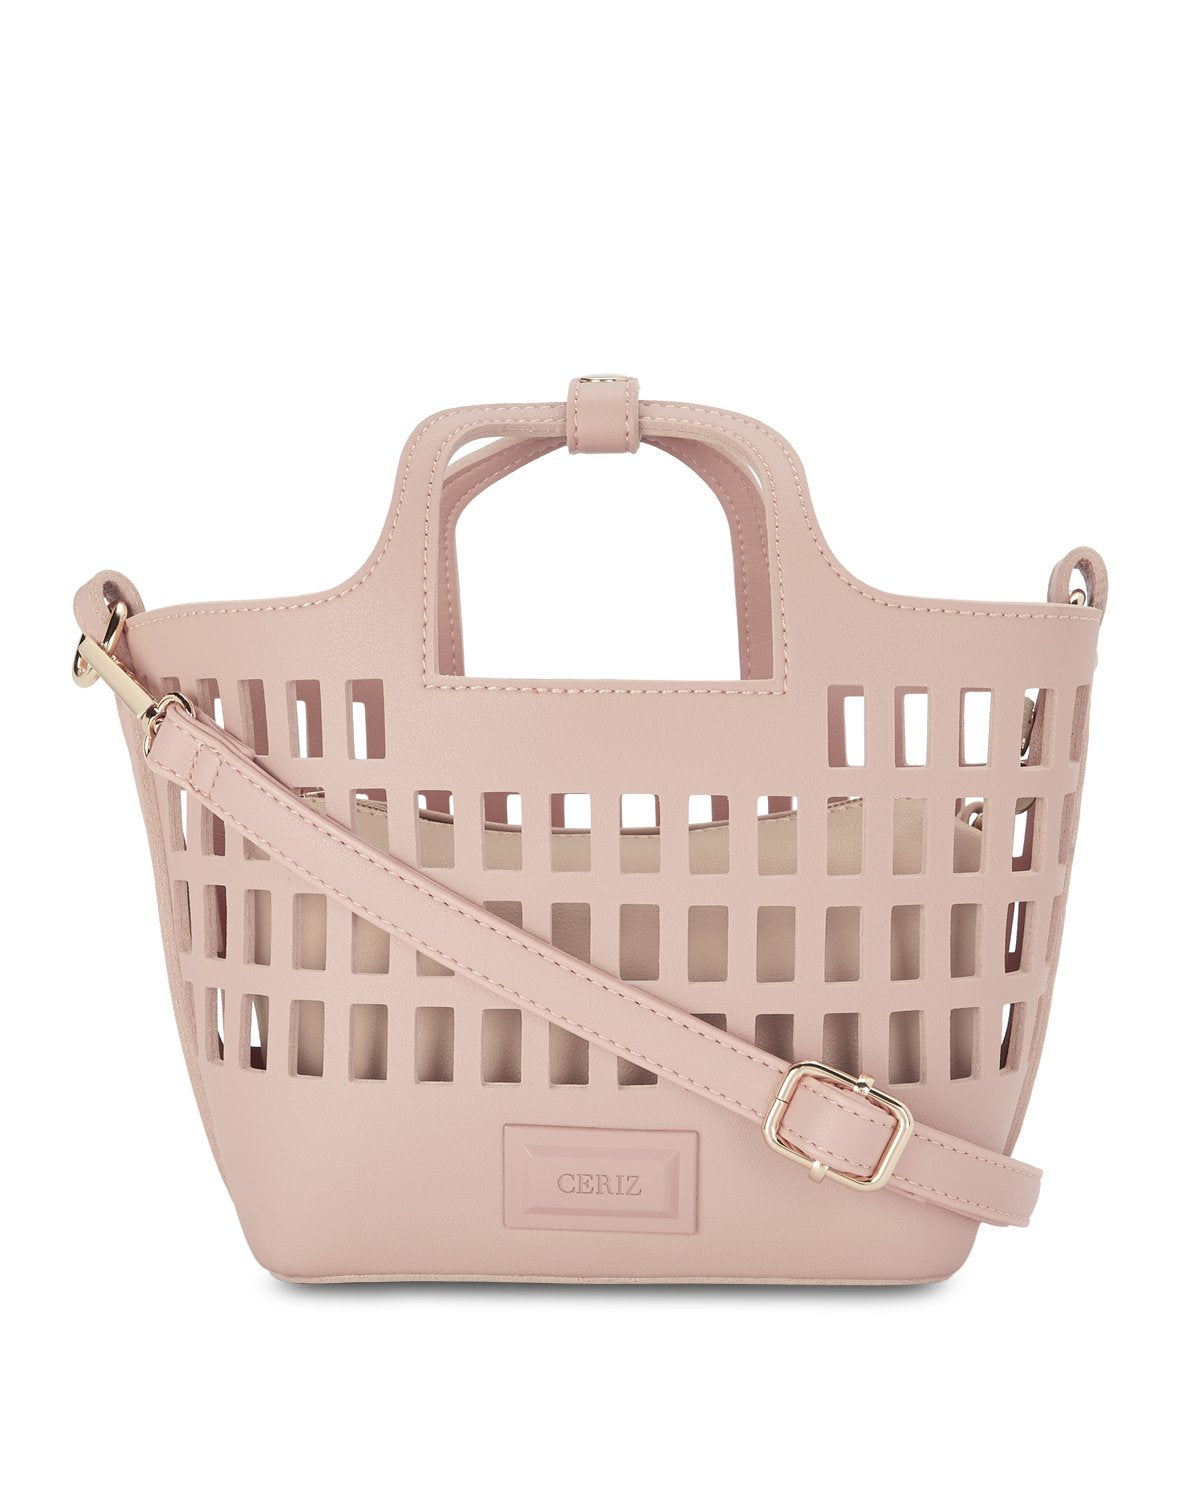 Beaufort Eclectic Pink Sling Bag